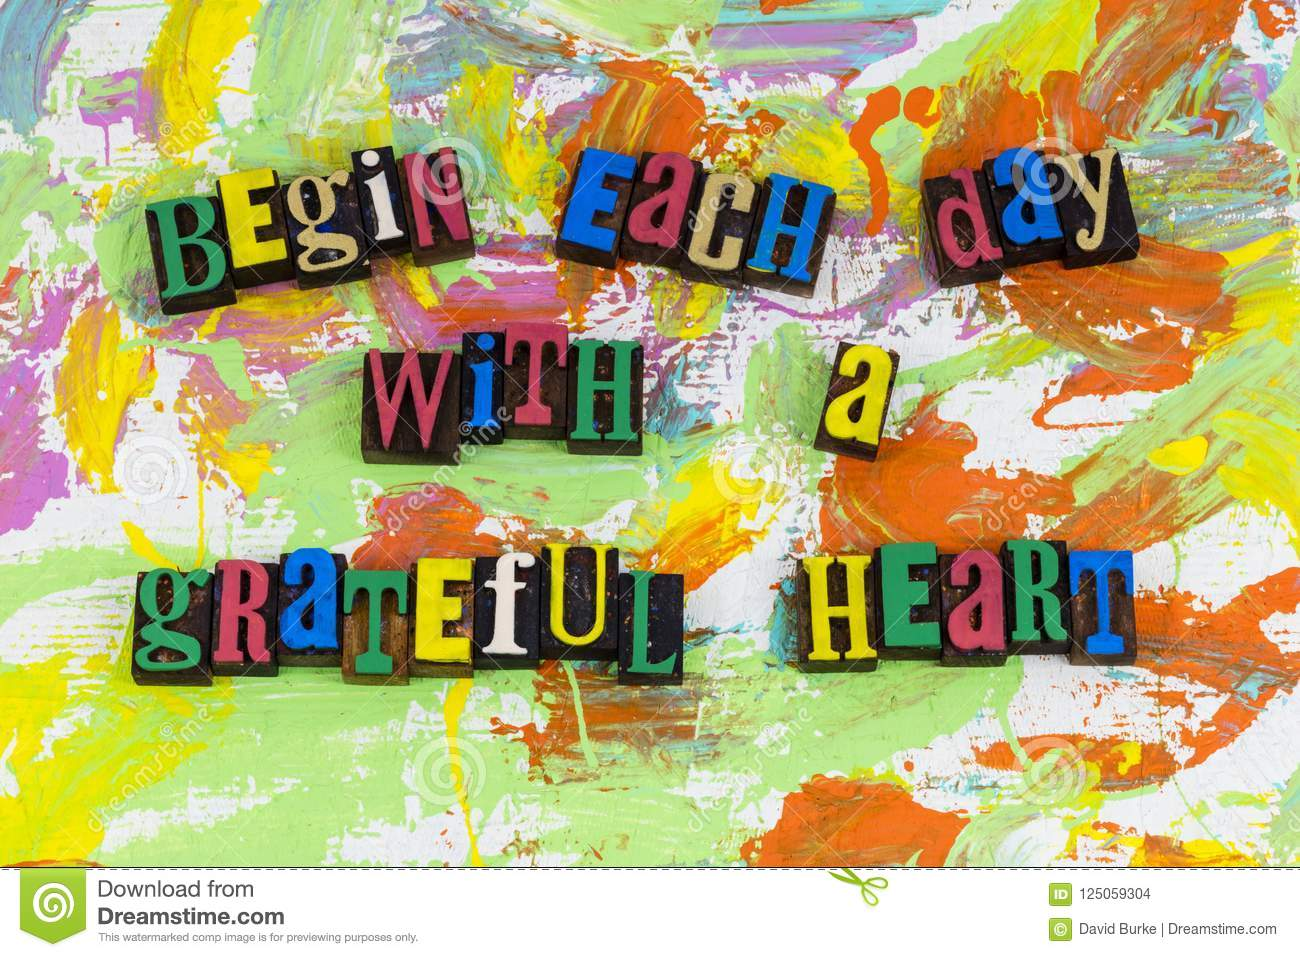 Begin each day with grateful heart